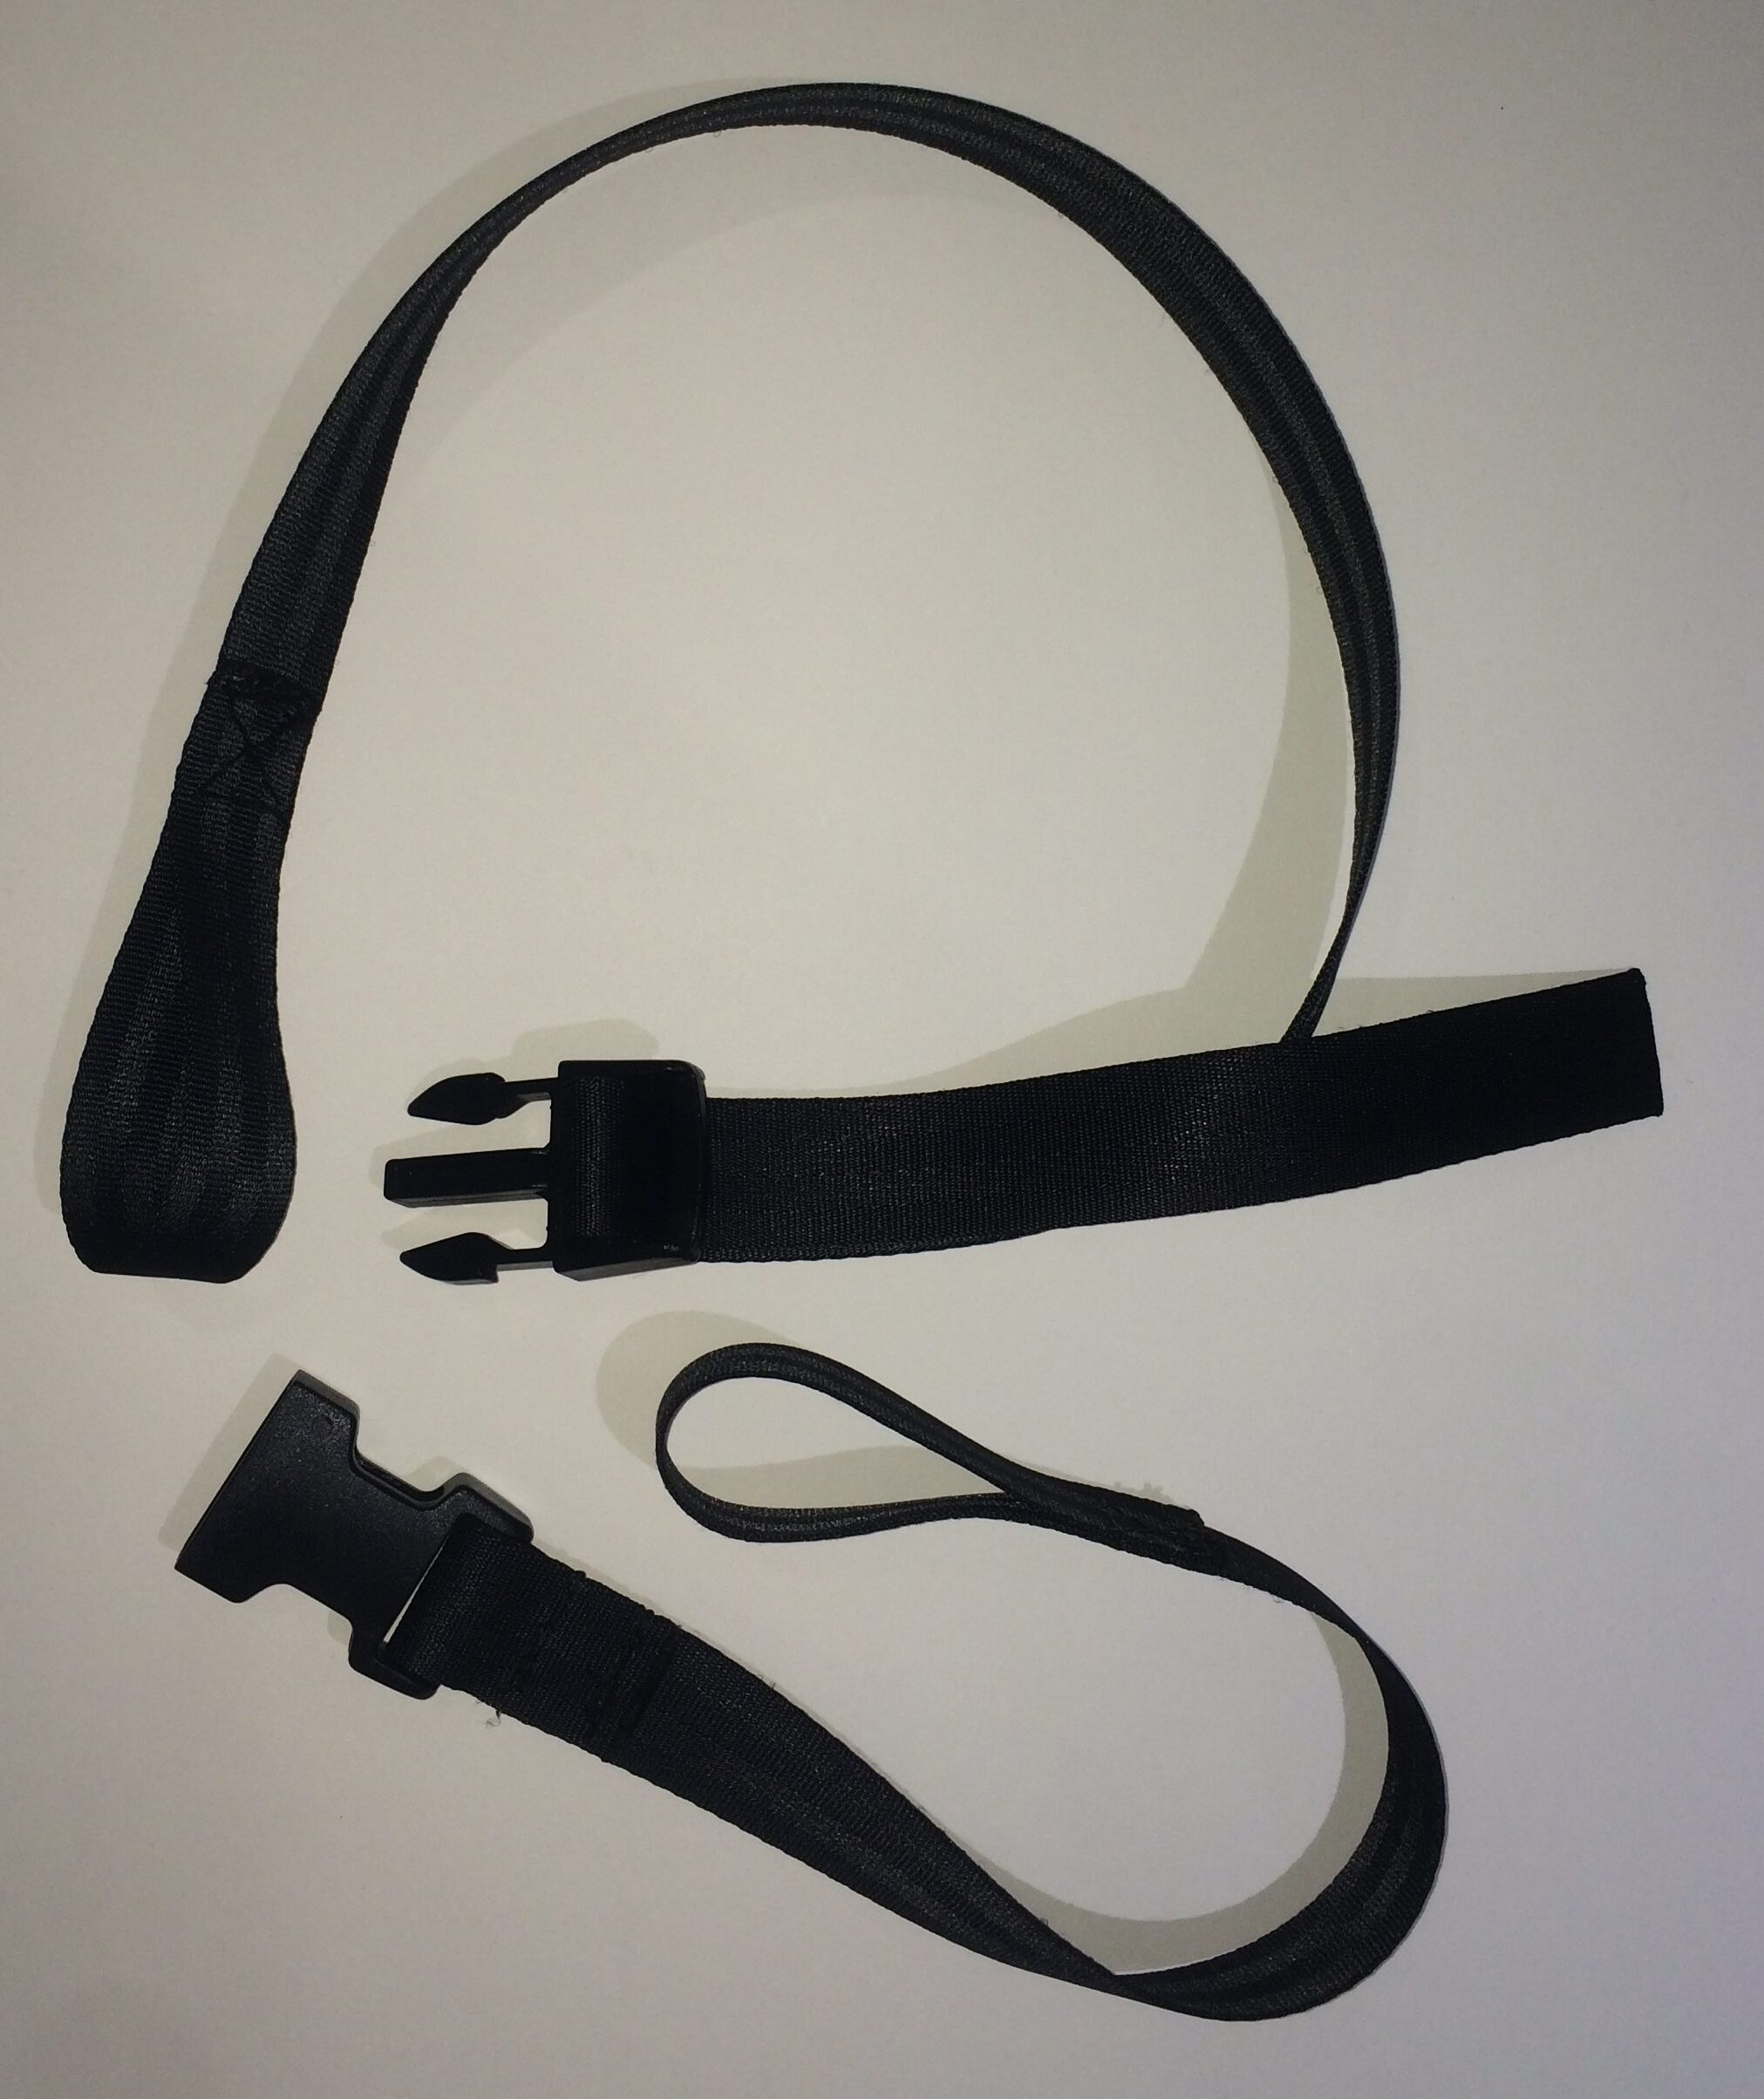 Loop Strap - 25mm Open